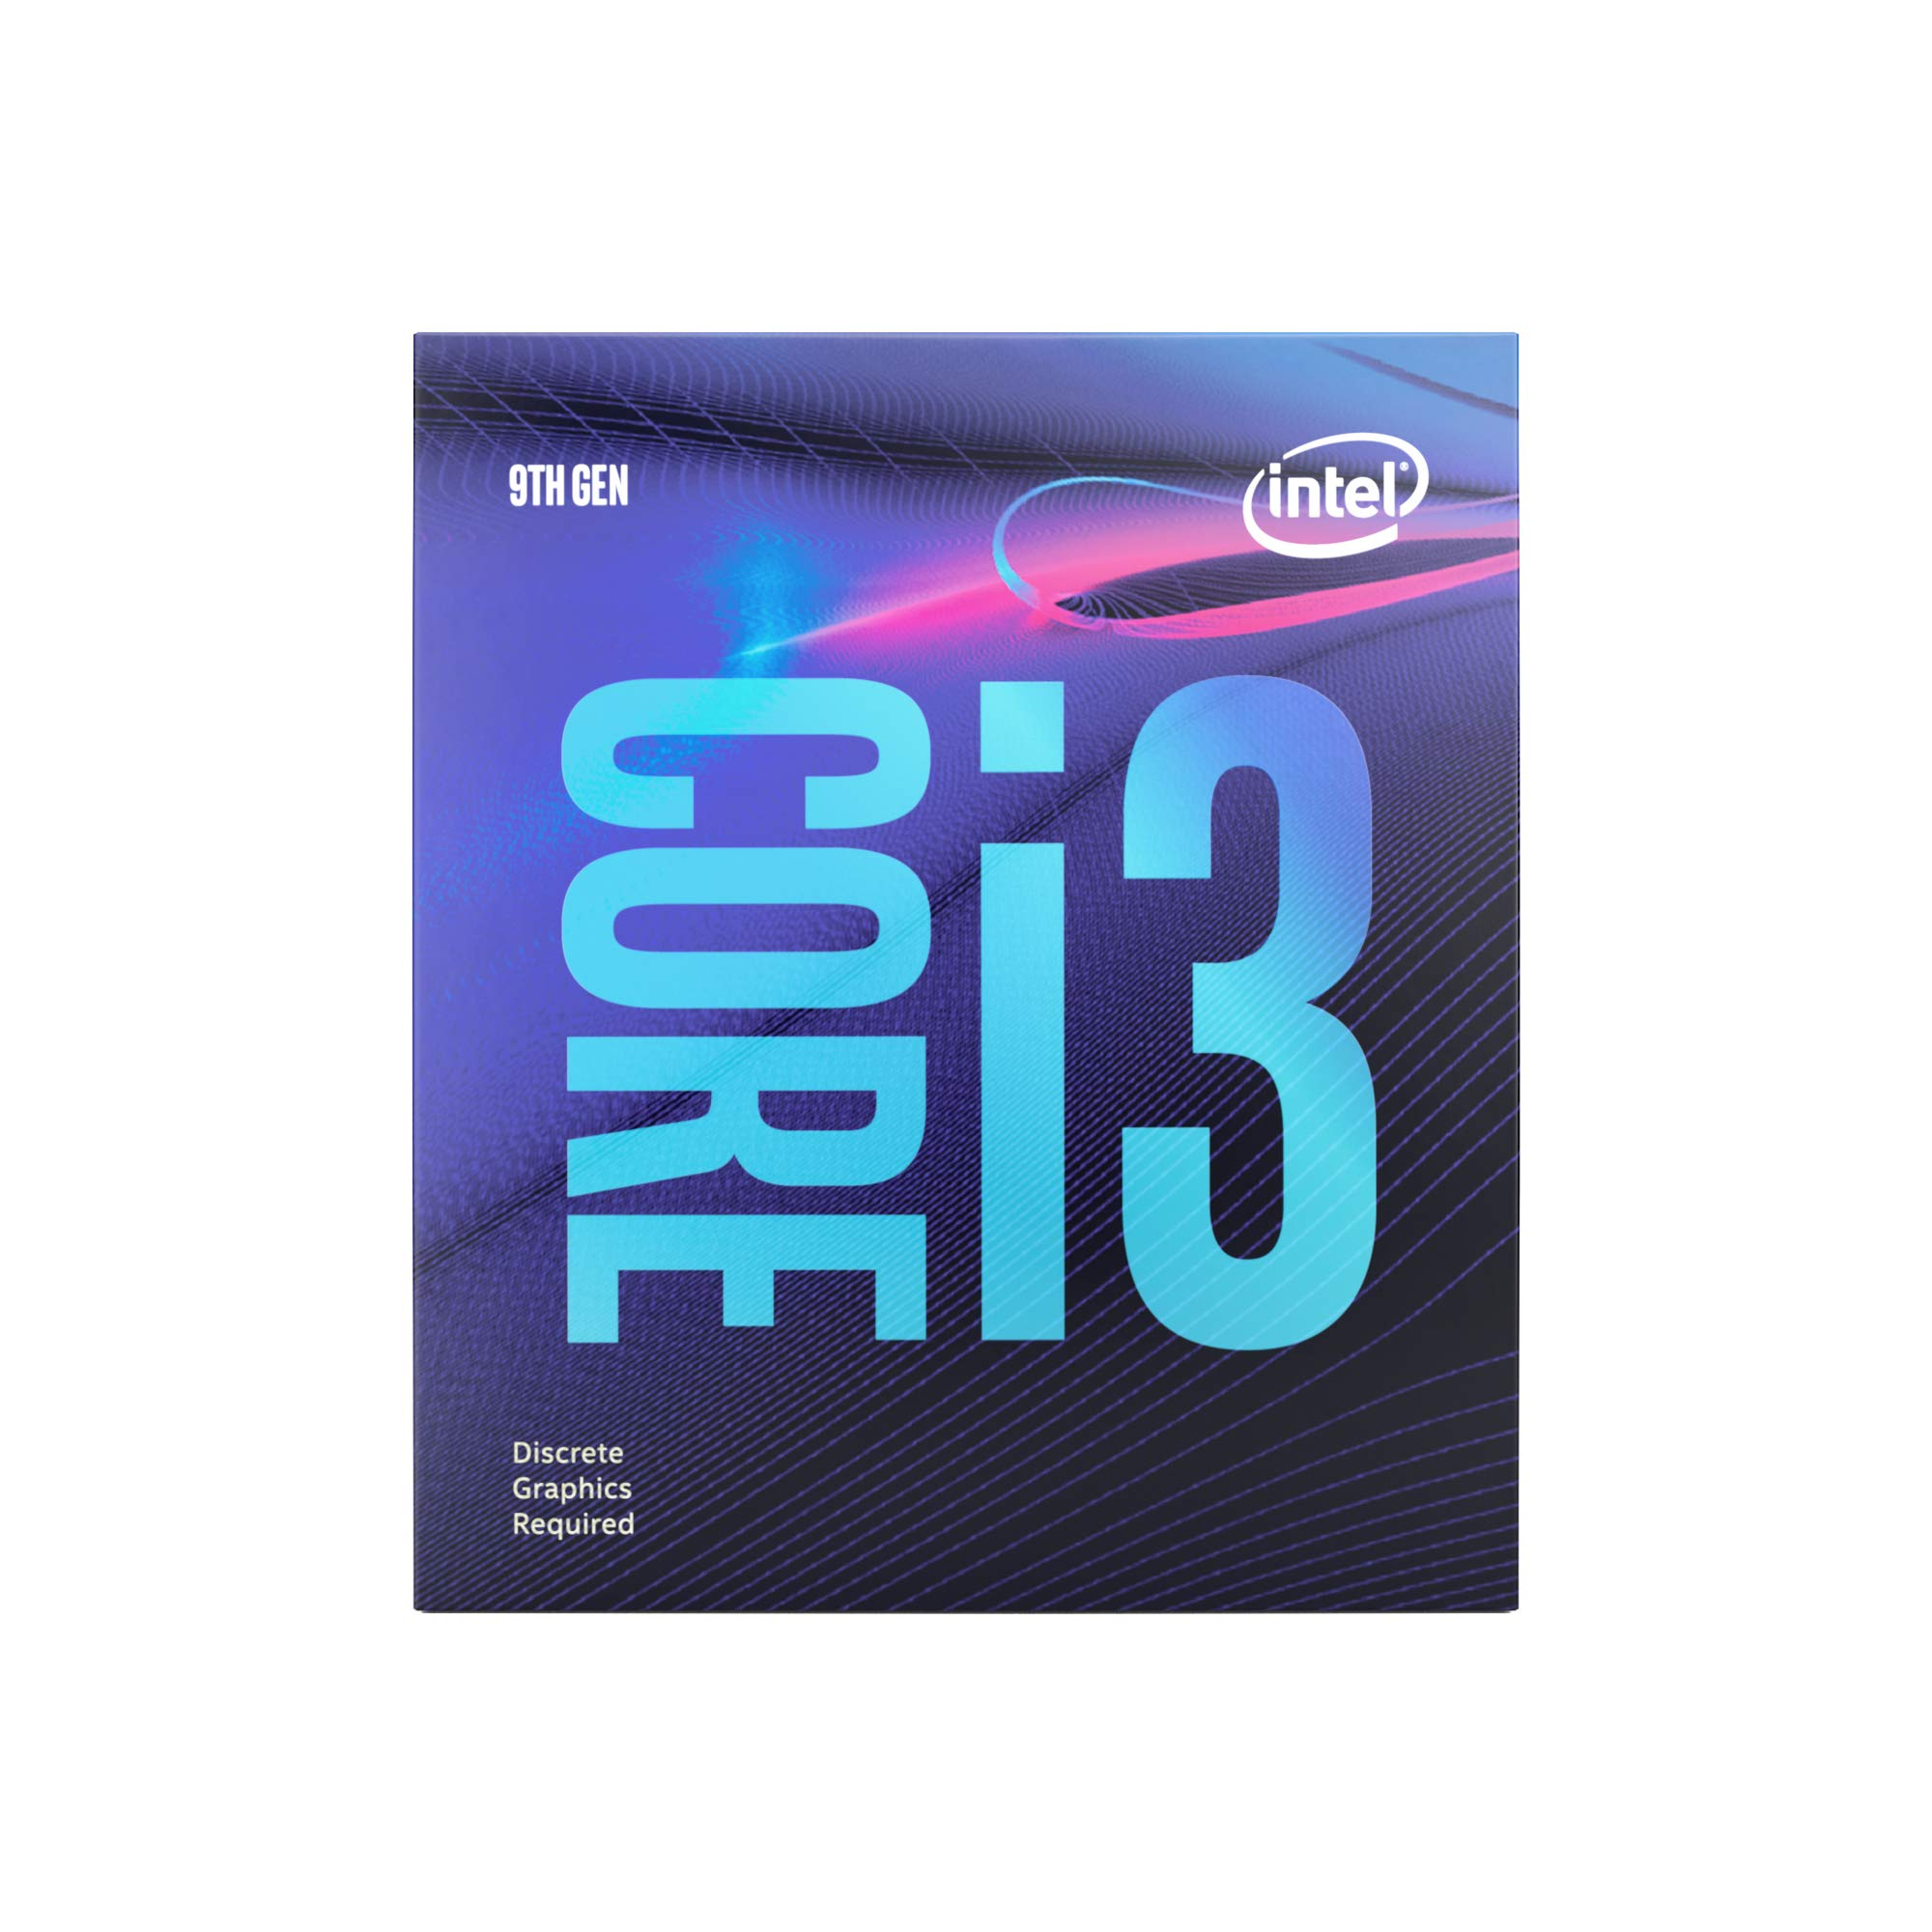 Intel Core i3-9100F Desktop Processor 4 Core Up to 4.2 GHz Without Processor Graphics LGA1151 300 Series 65W by Intel